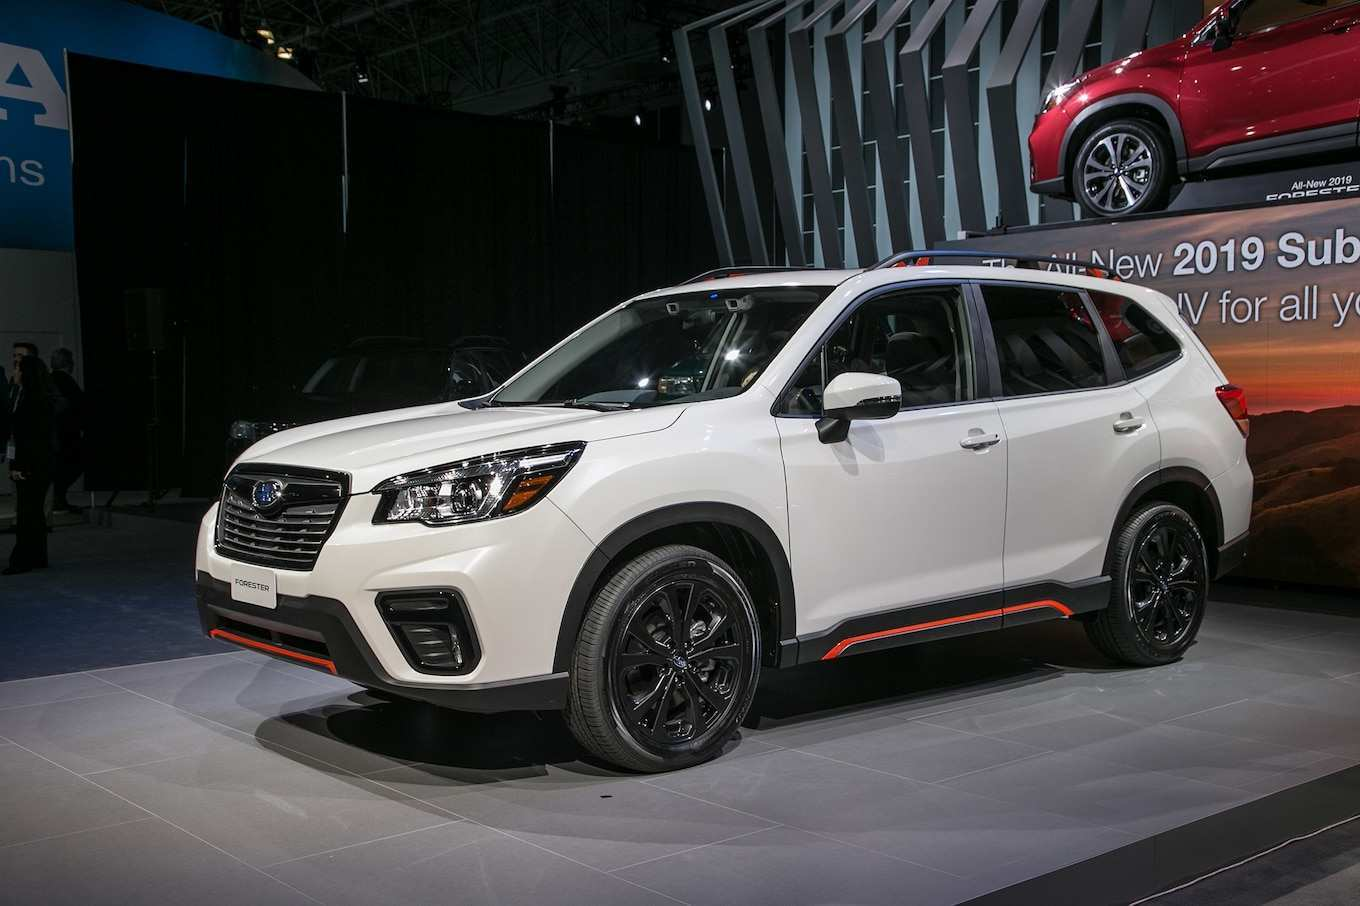 76 New 2019 Subaru Forester Xt Touring Overview with 2019 Subaru Forester Xt Touring